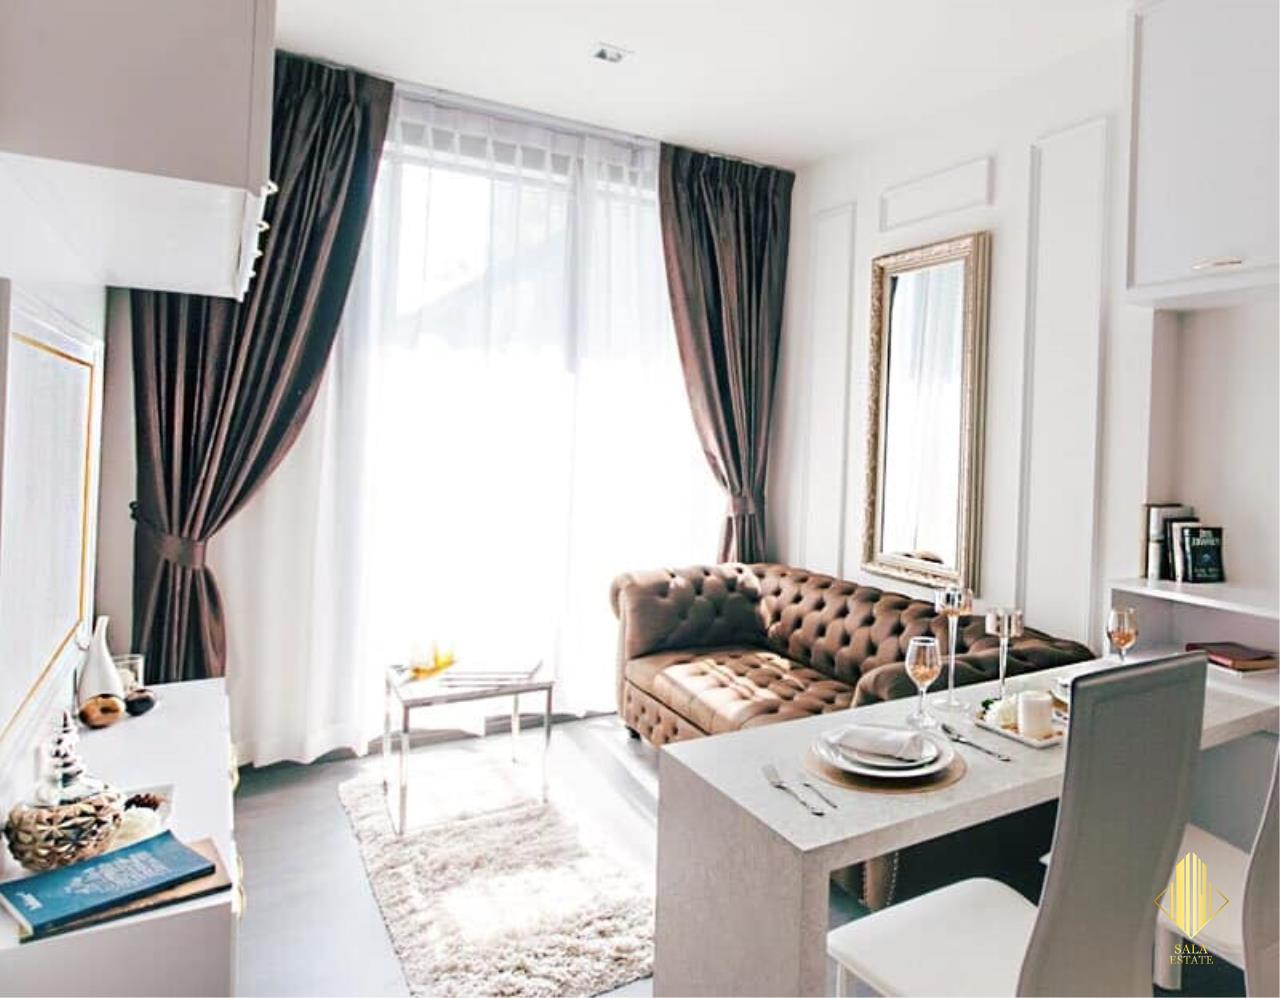 SALA ESTATE Agency's (FOR RENT)THE EDGE SUKHUMVIT 23 – BTS ASOKE, 35 SQM 1 BEDROOM 1 BATHROOM, FULLY FURNISHED, CITY VIEW 1